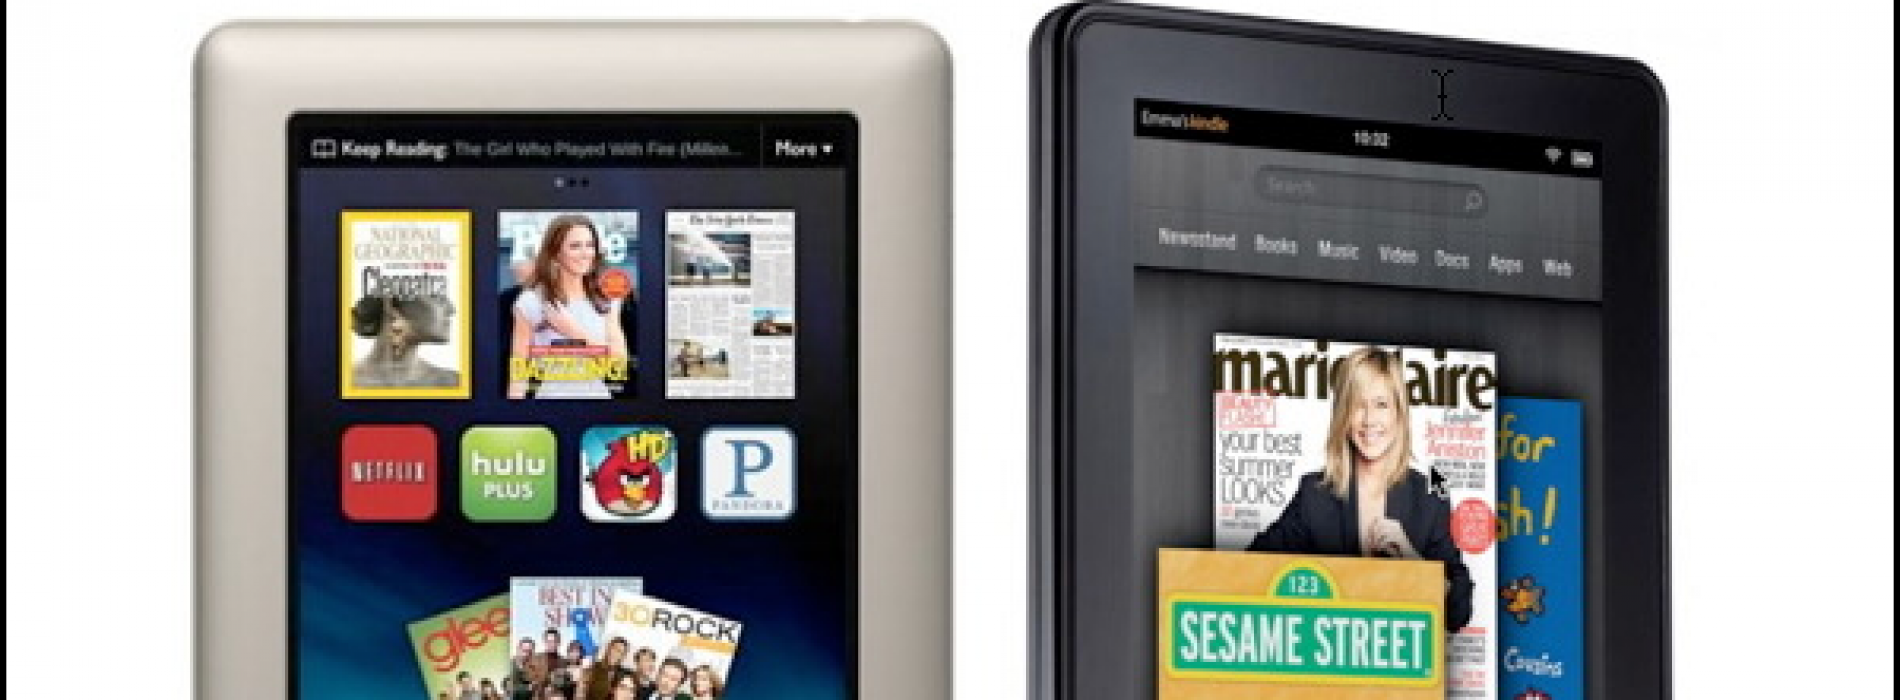 Platform Wars: A Meditation on the Amazon Kindle Fire and the B&N NOOK Tablet